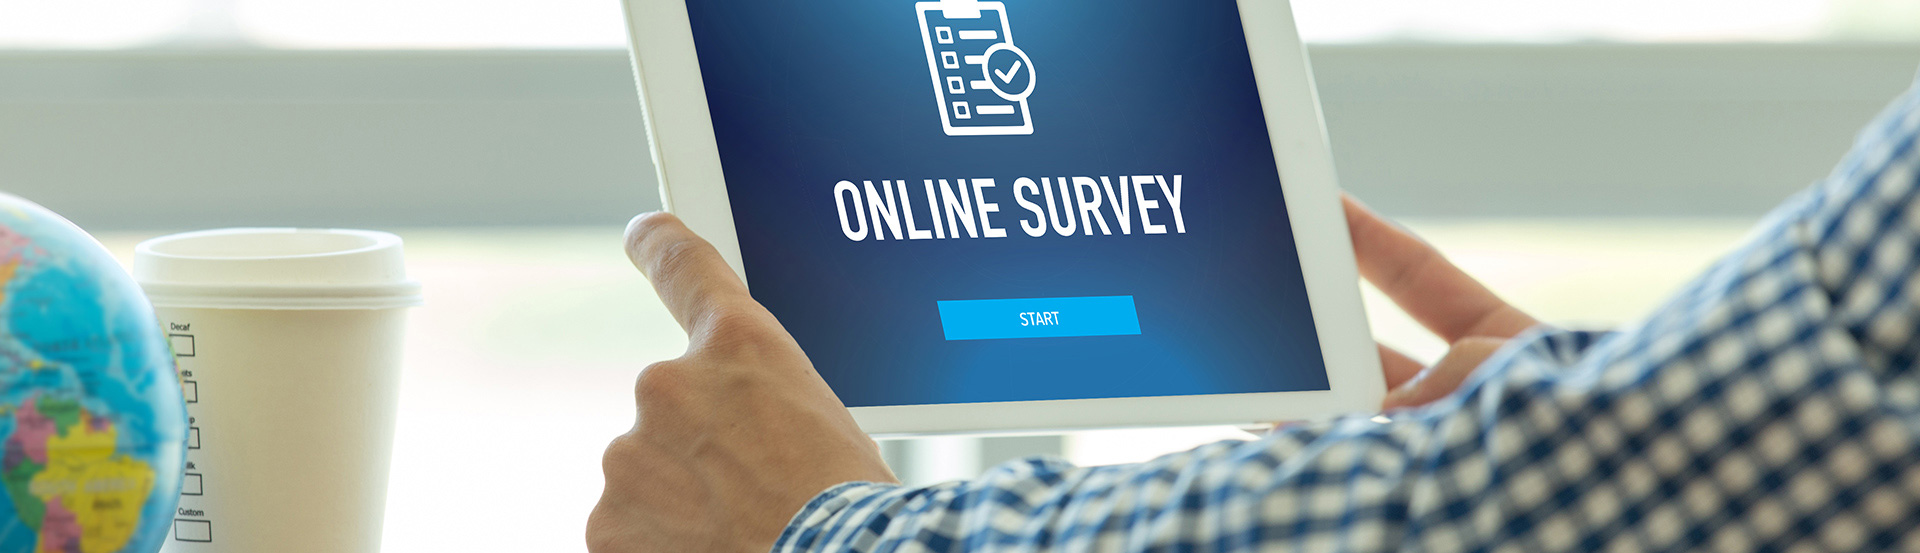 Online survey layout and personalization